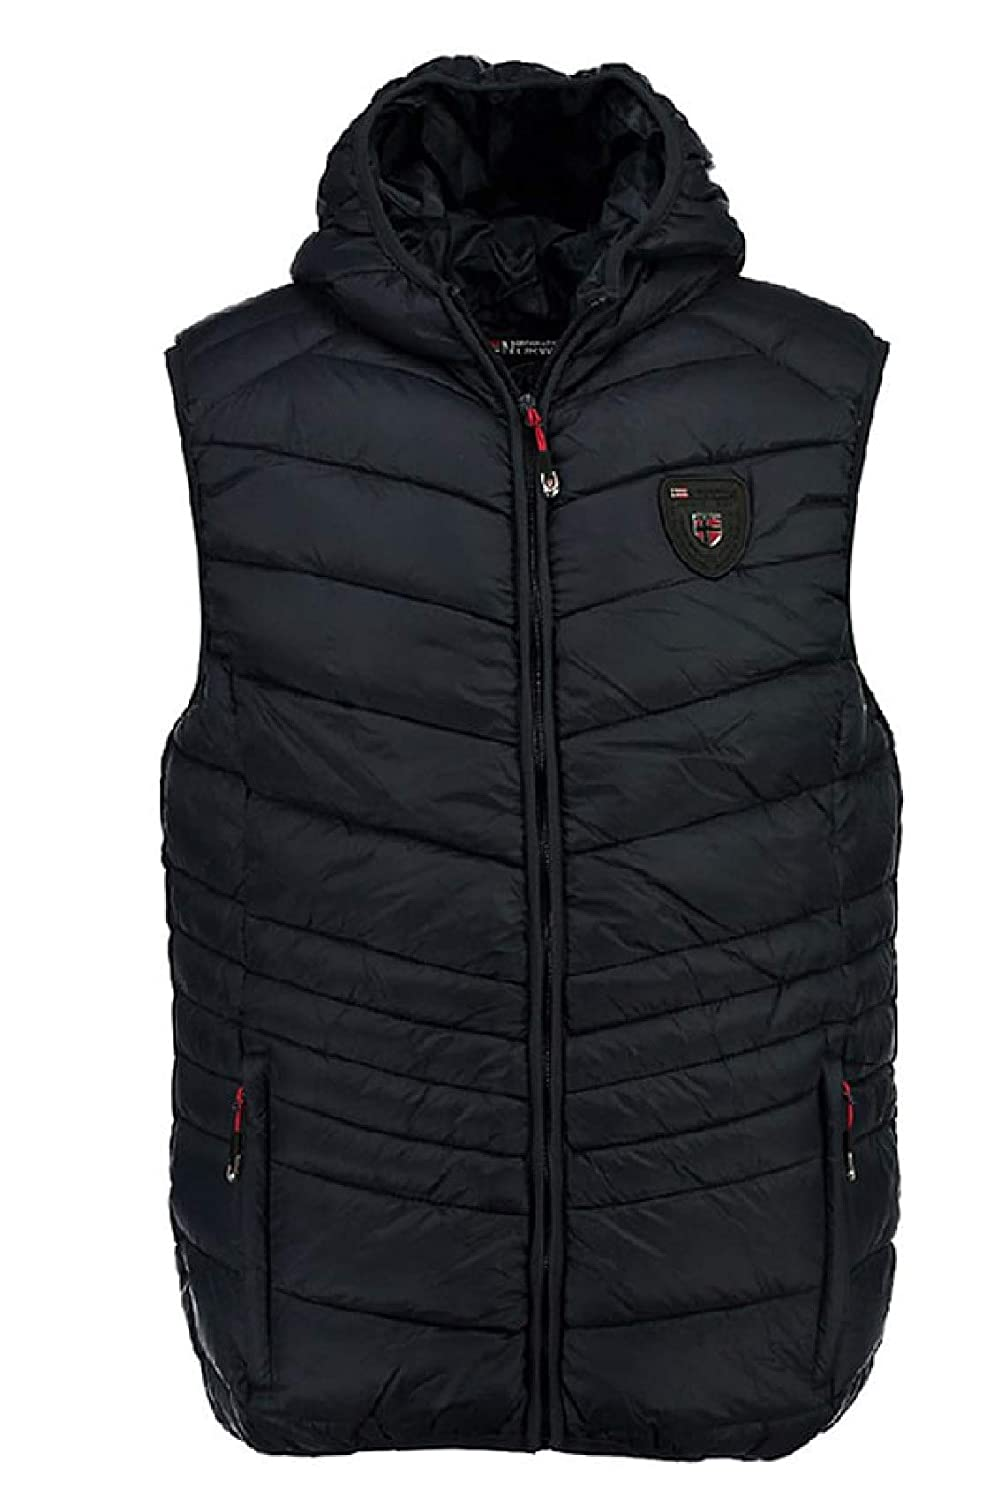 Geographical Norway - Chaleco - para Hombre